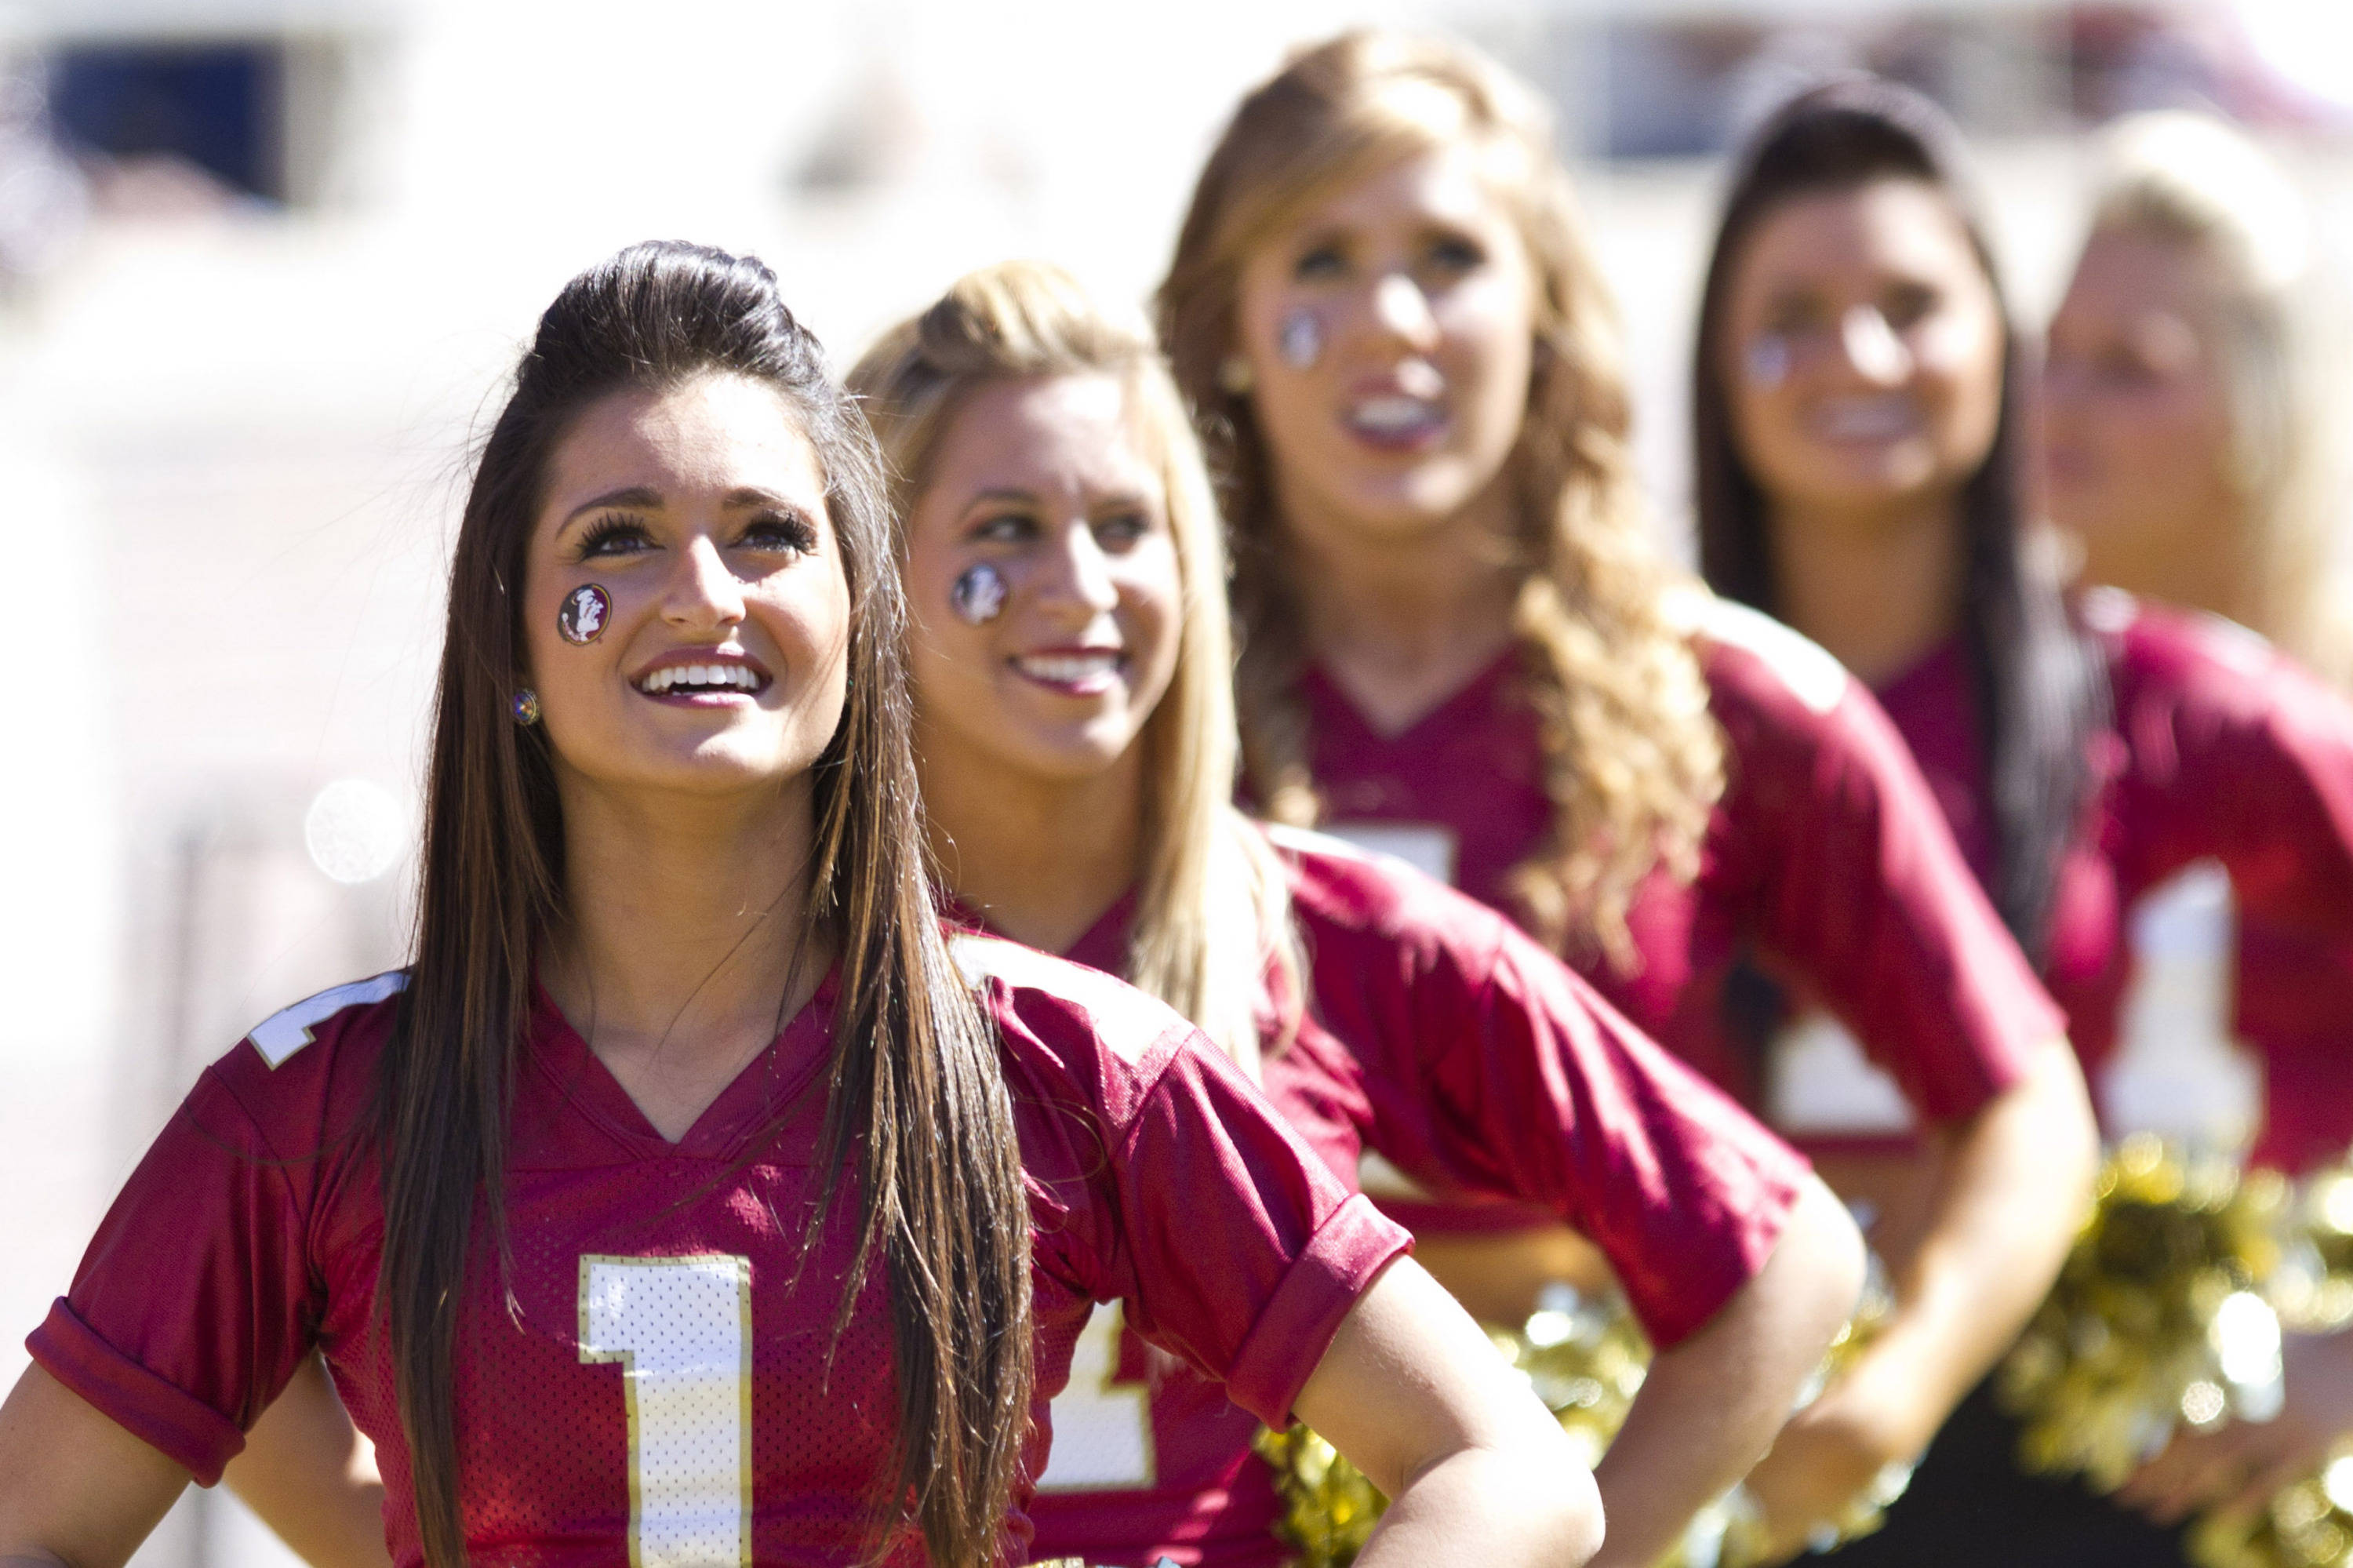 FSU cheerleaders pump up fans during the football game against NC State on October 29, 2011.